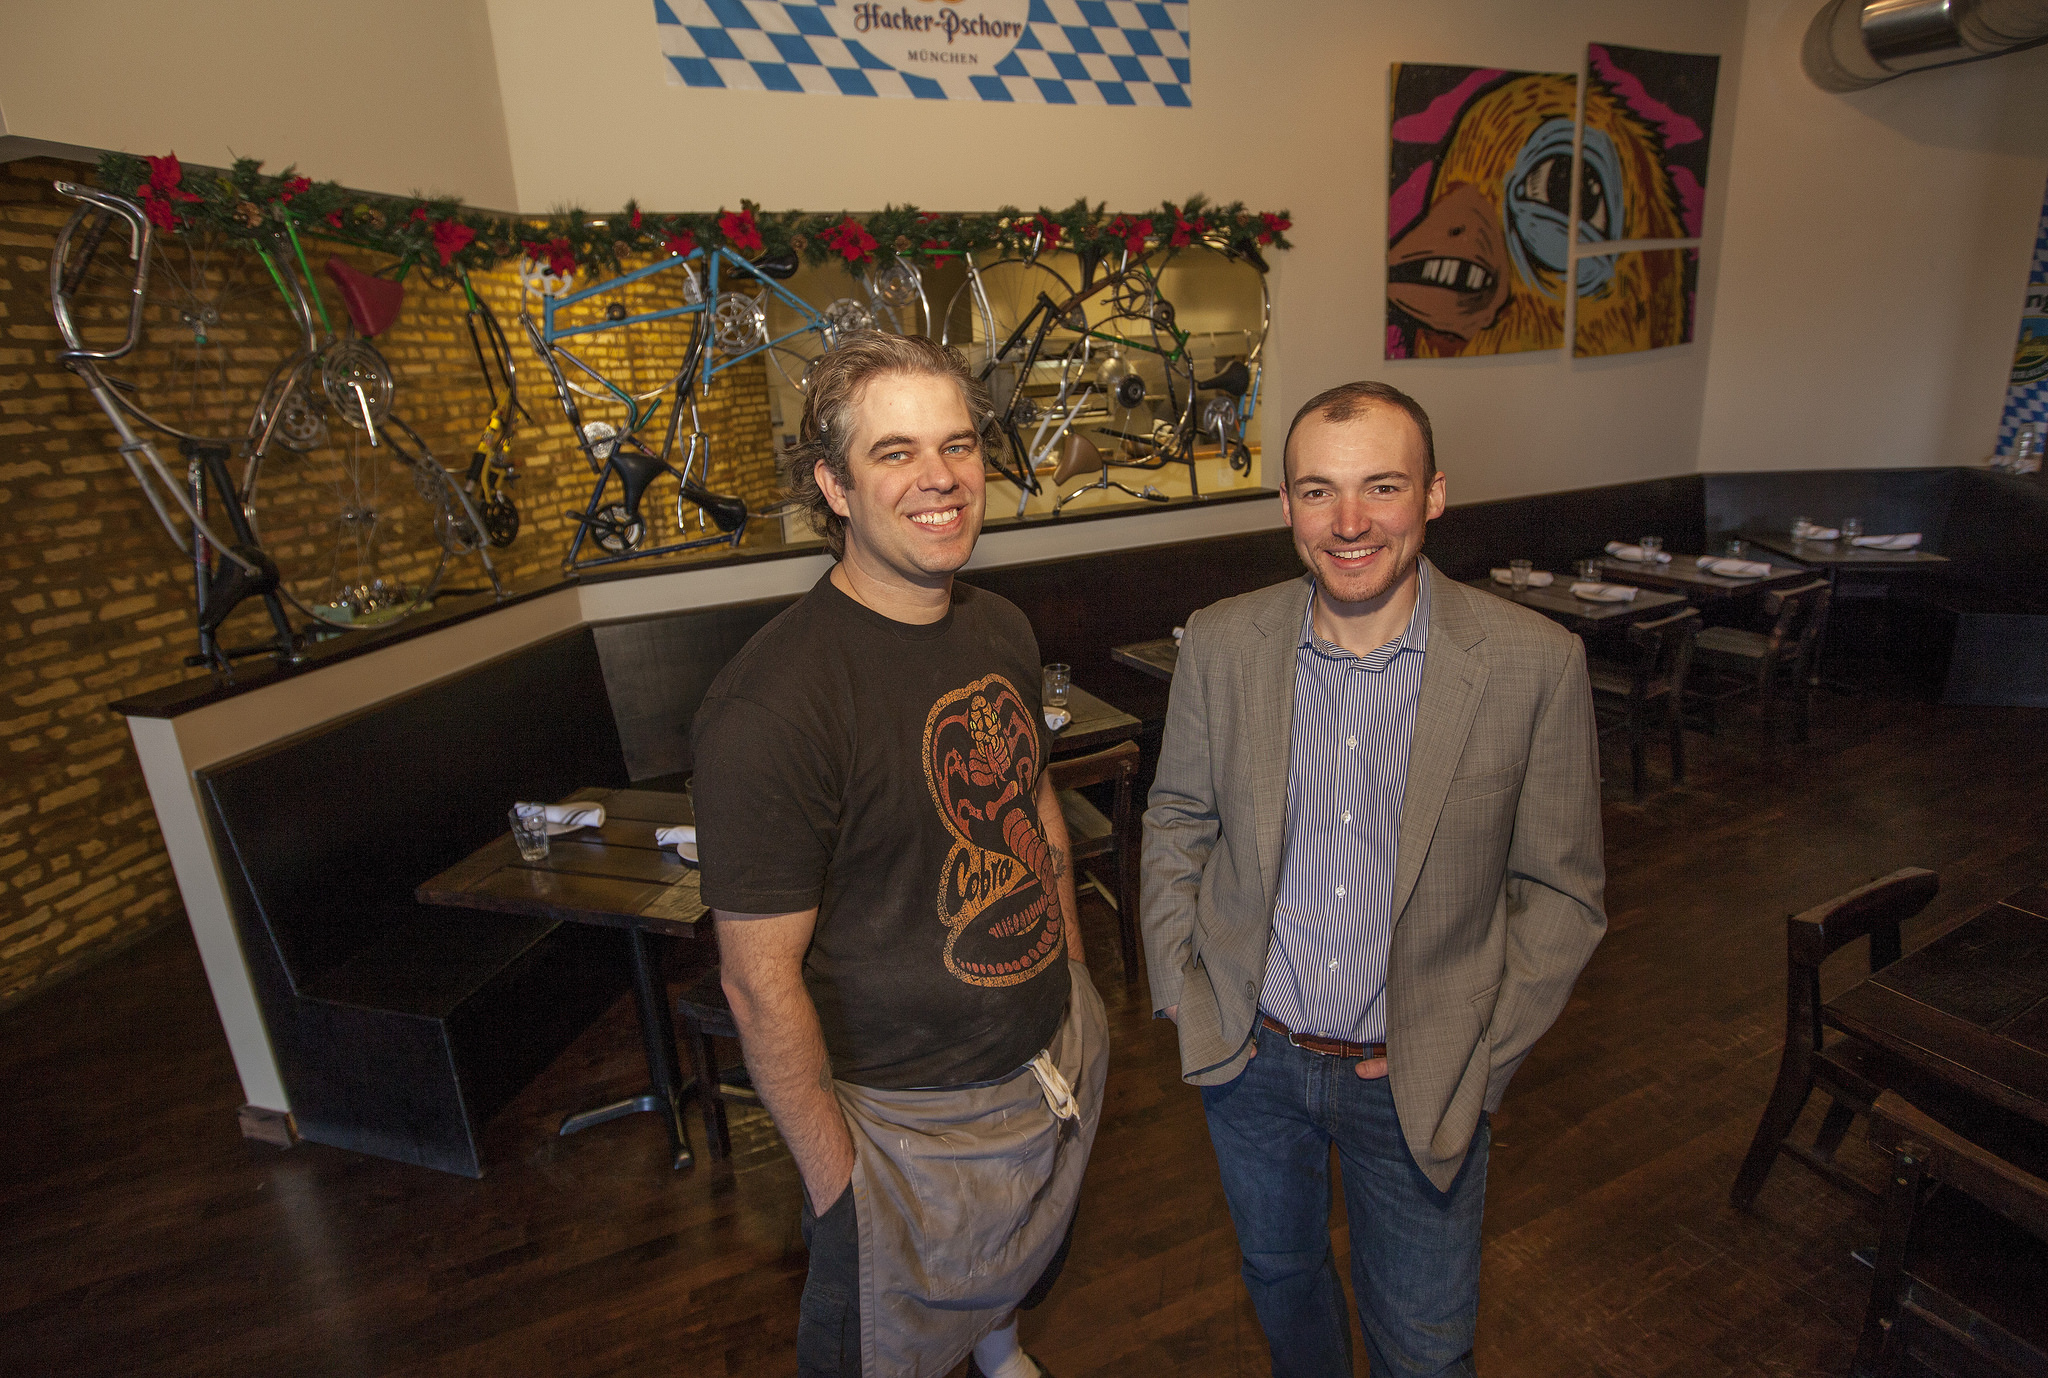 The Radler chef and owner in front of tables that are now gone